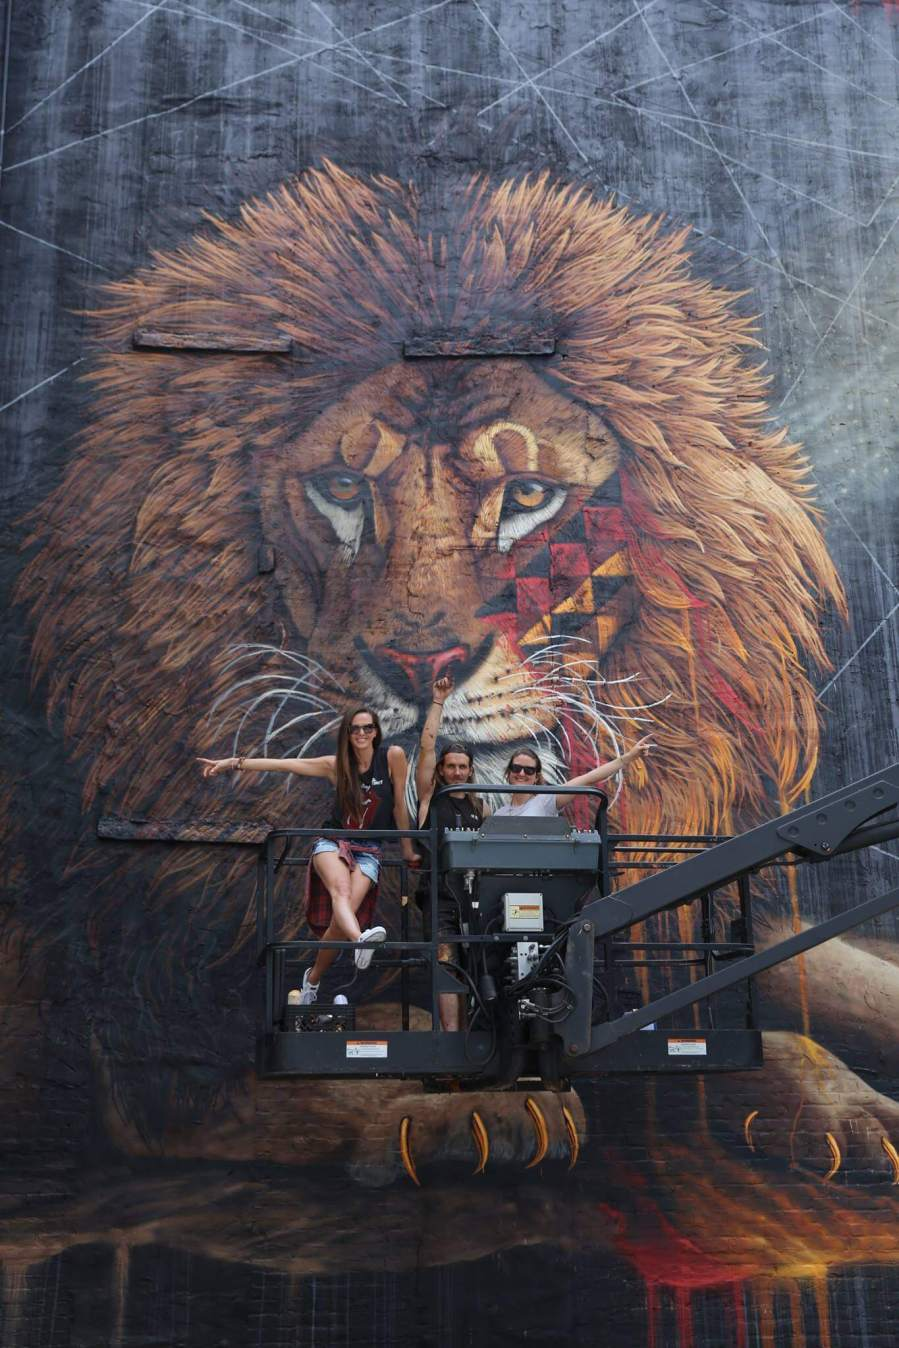 Sonny, Lion Street Art Mural, New York City To the Bone 2017. Photo credit @just_a_spectator